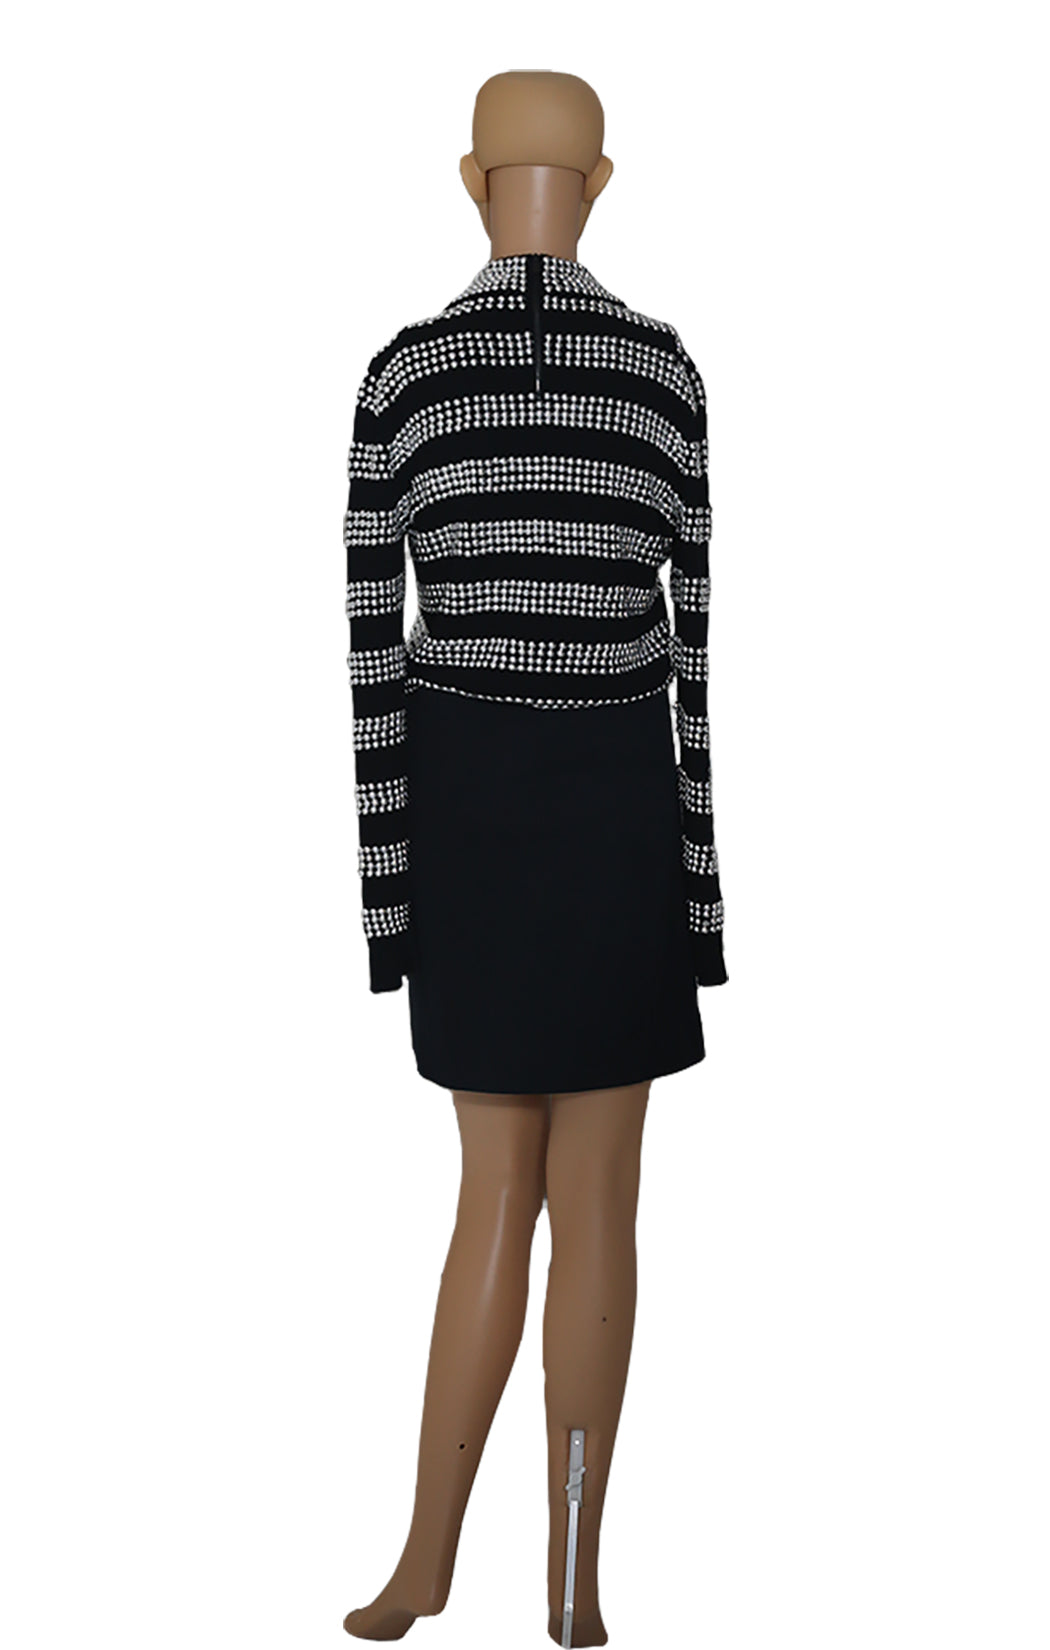 Back view of MICHAEL KORS COLLECTION  Silver Studded Sweater